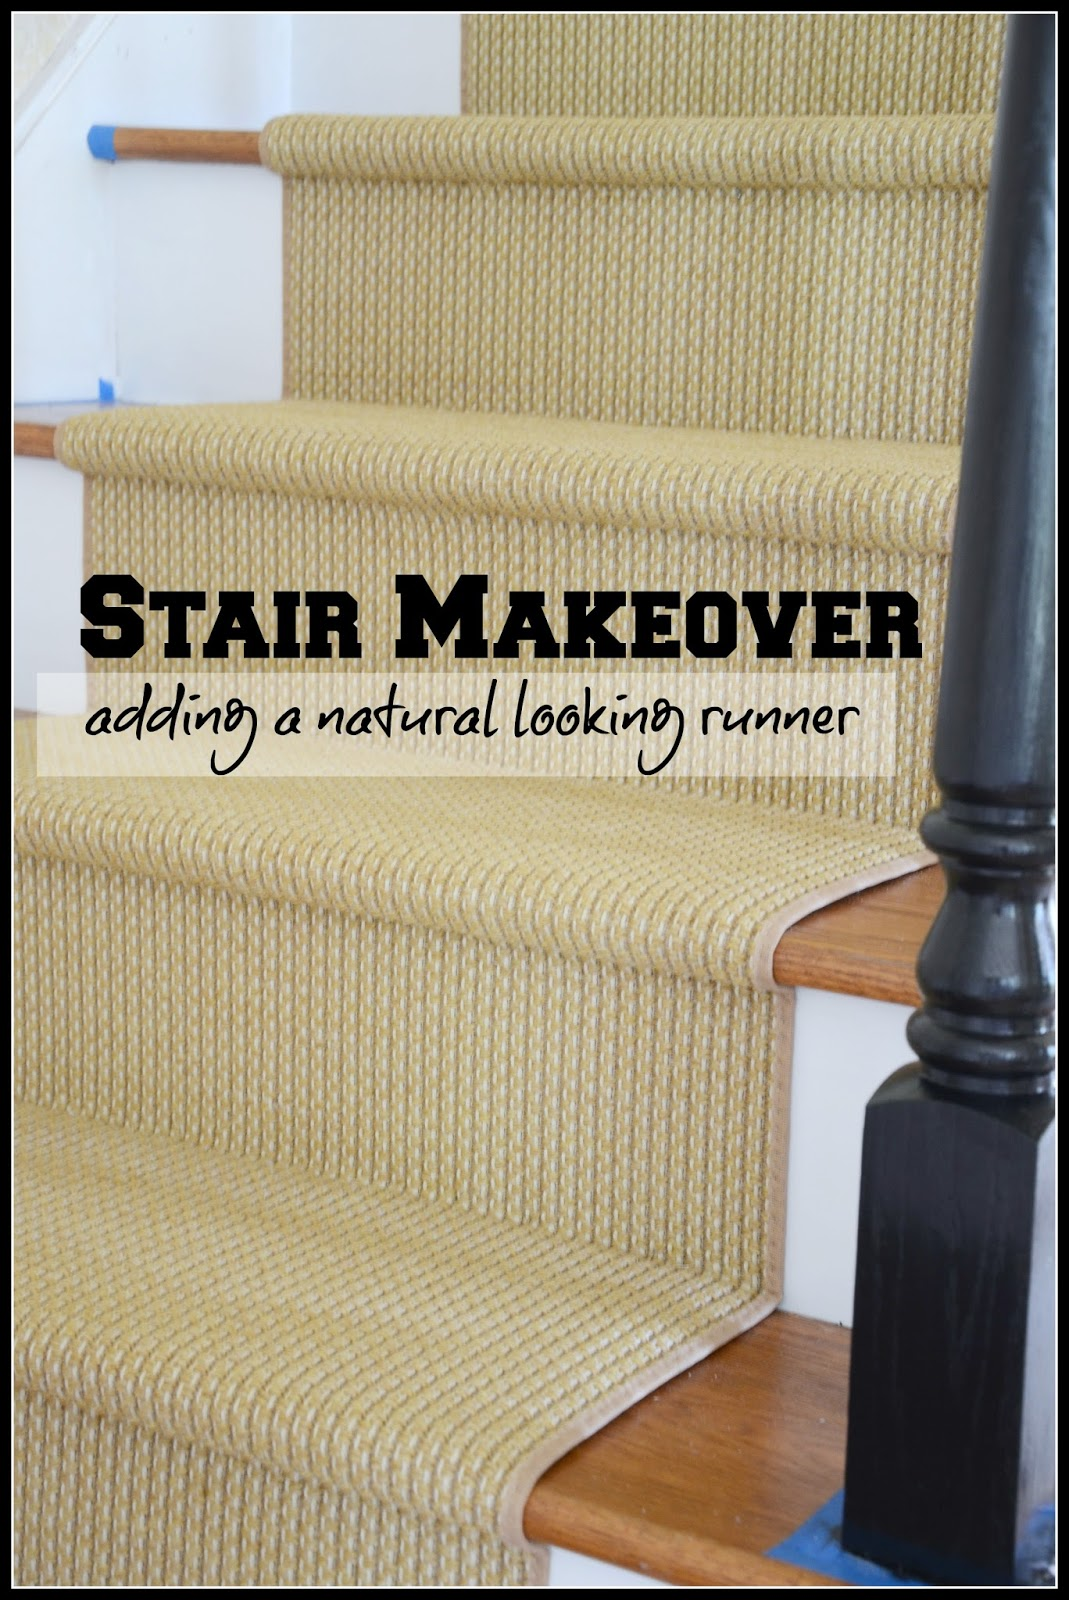 STAIR MAKEOVERu2026 ADDING A NATURAL LOOKING RUNNER